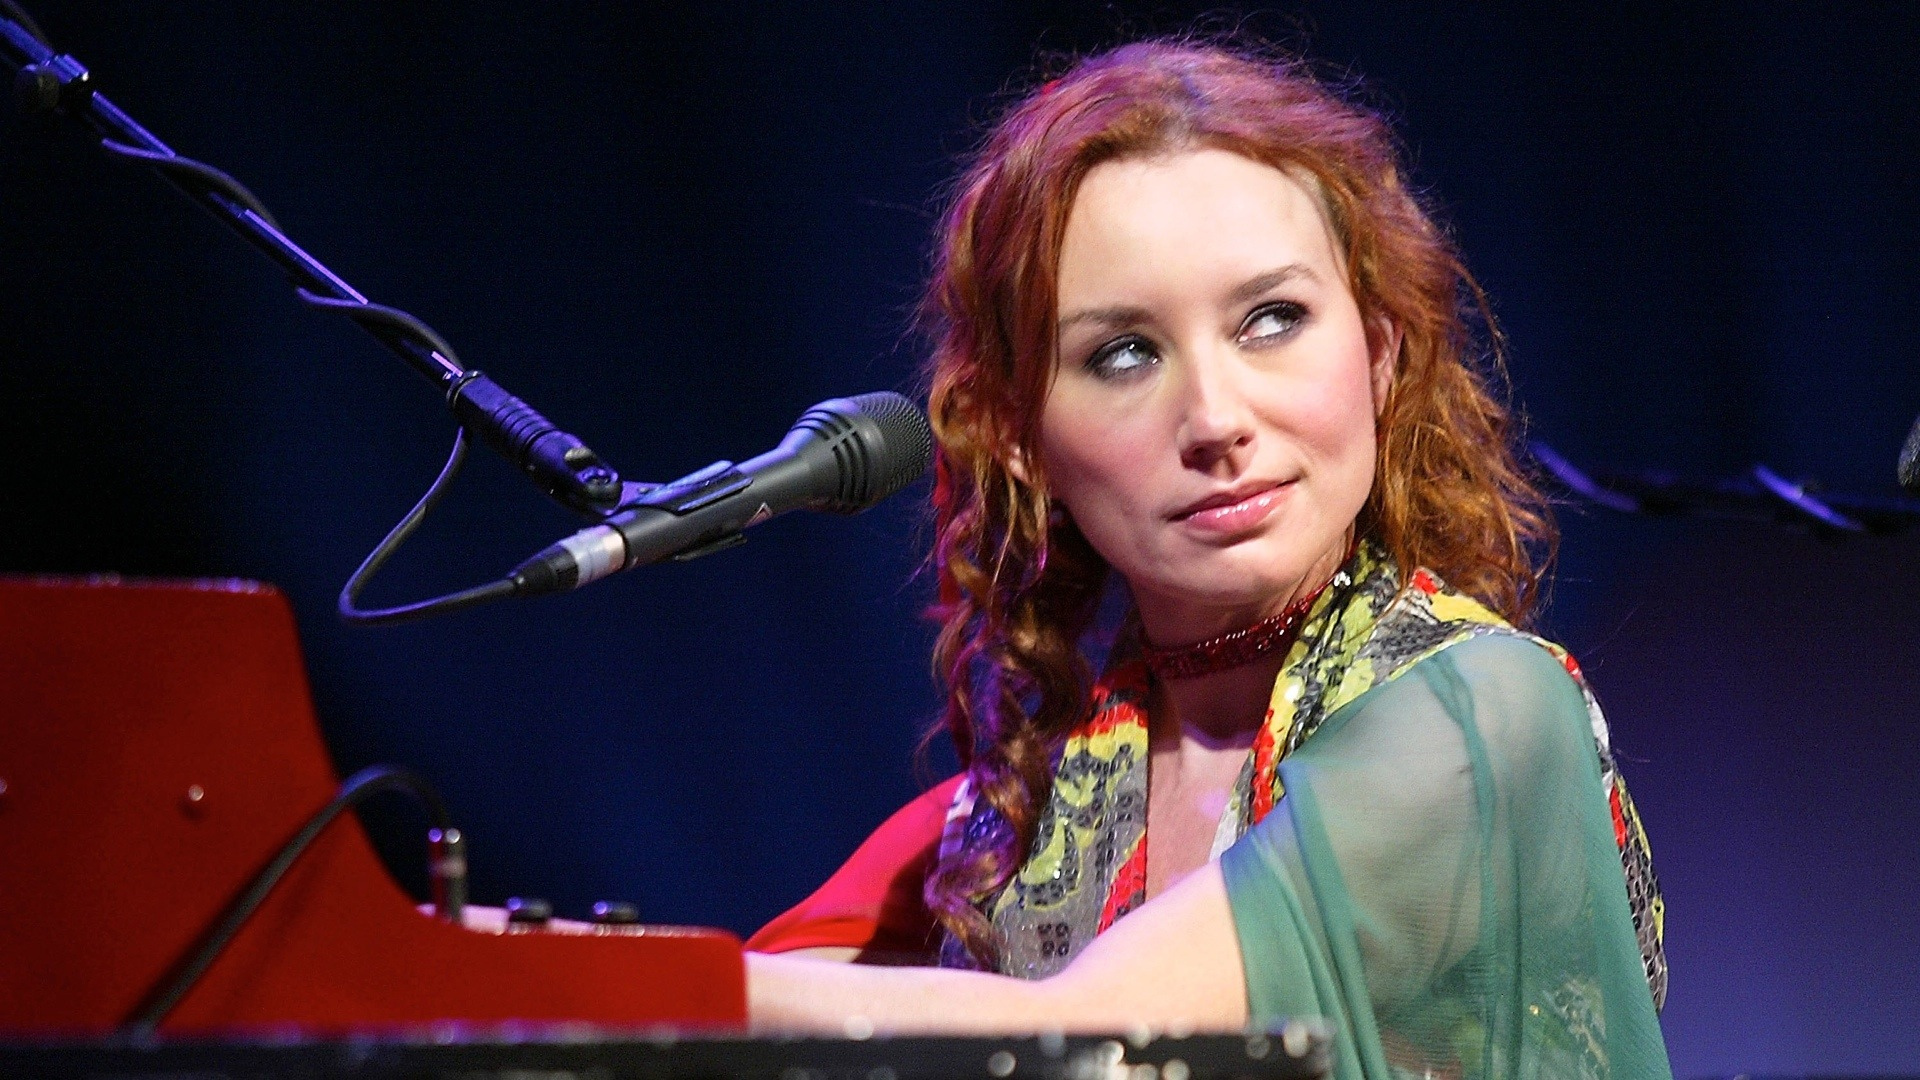 Tori Amos Rehearses For Sold-Out Concert